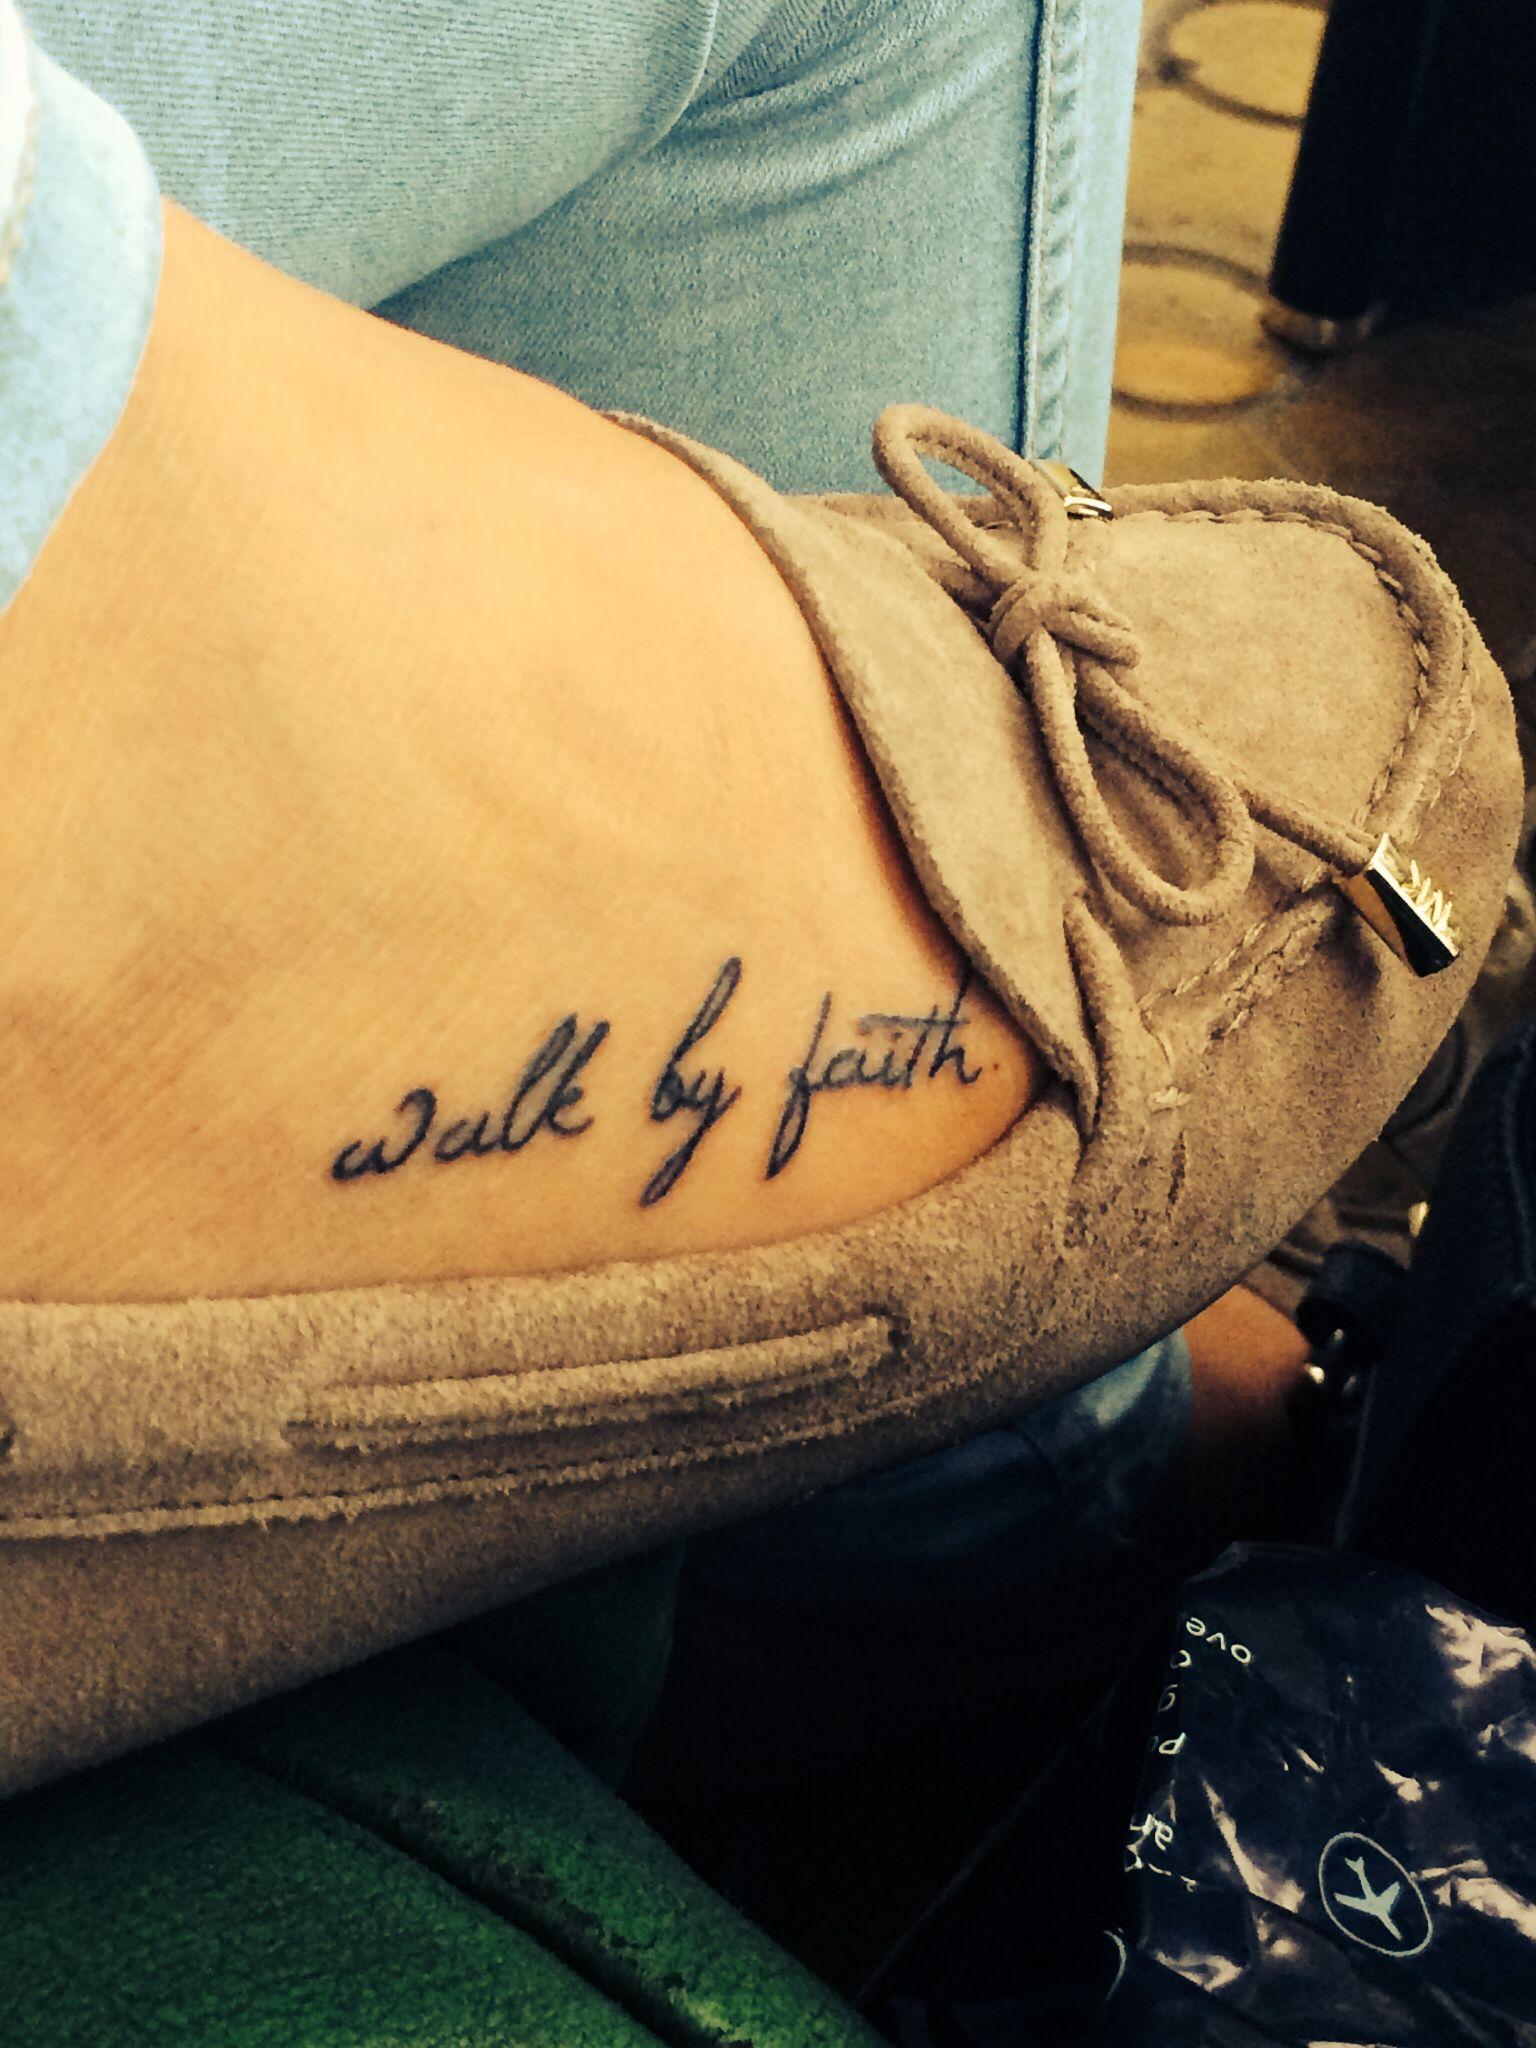 Tattoo ideas small walk by faith foot shoes Foot